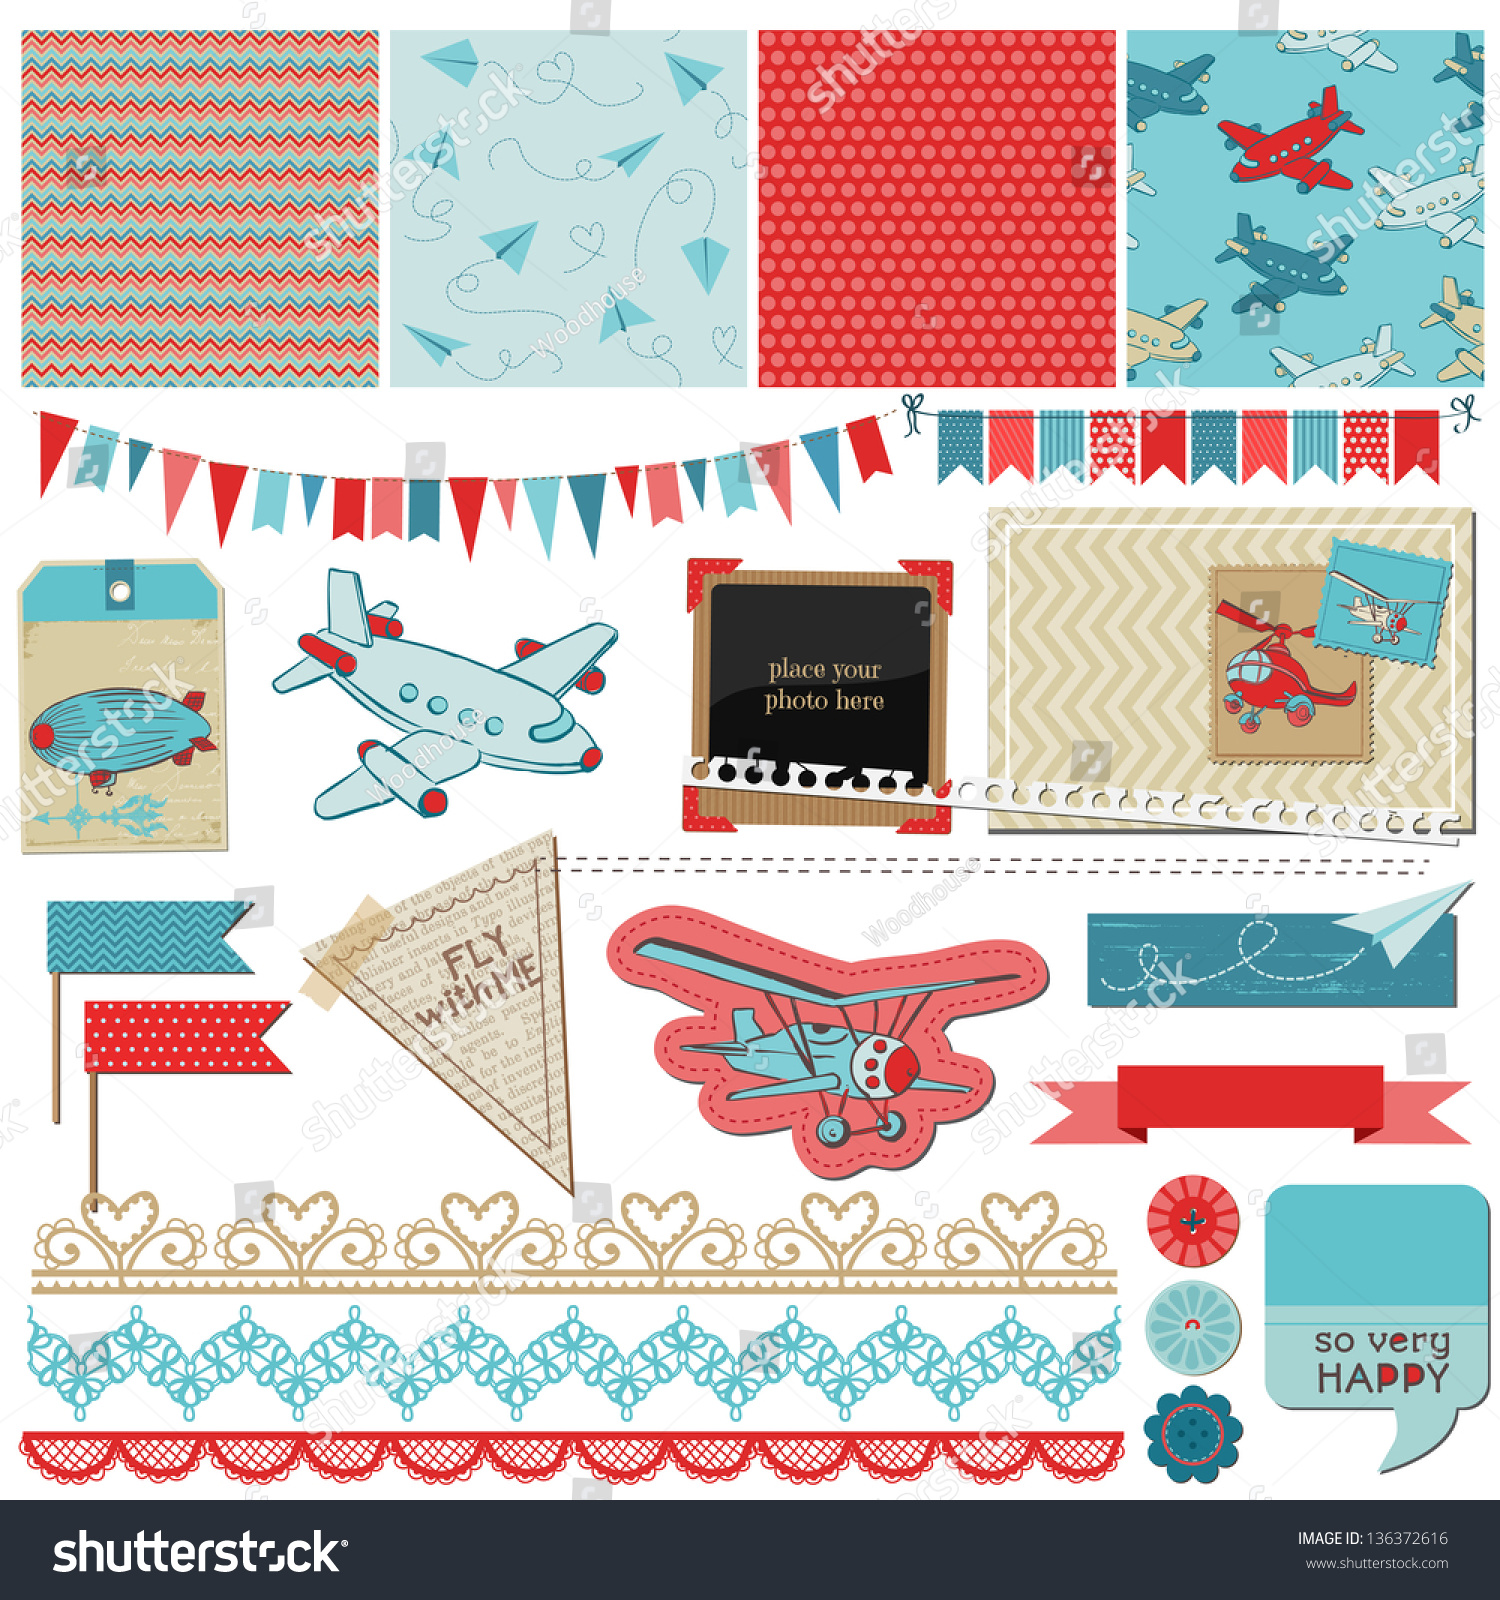 Scrap book design